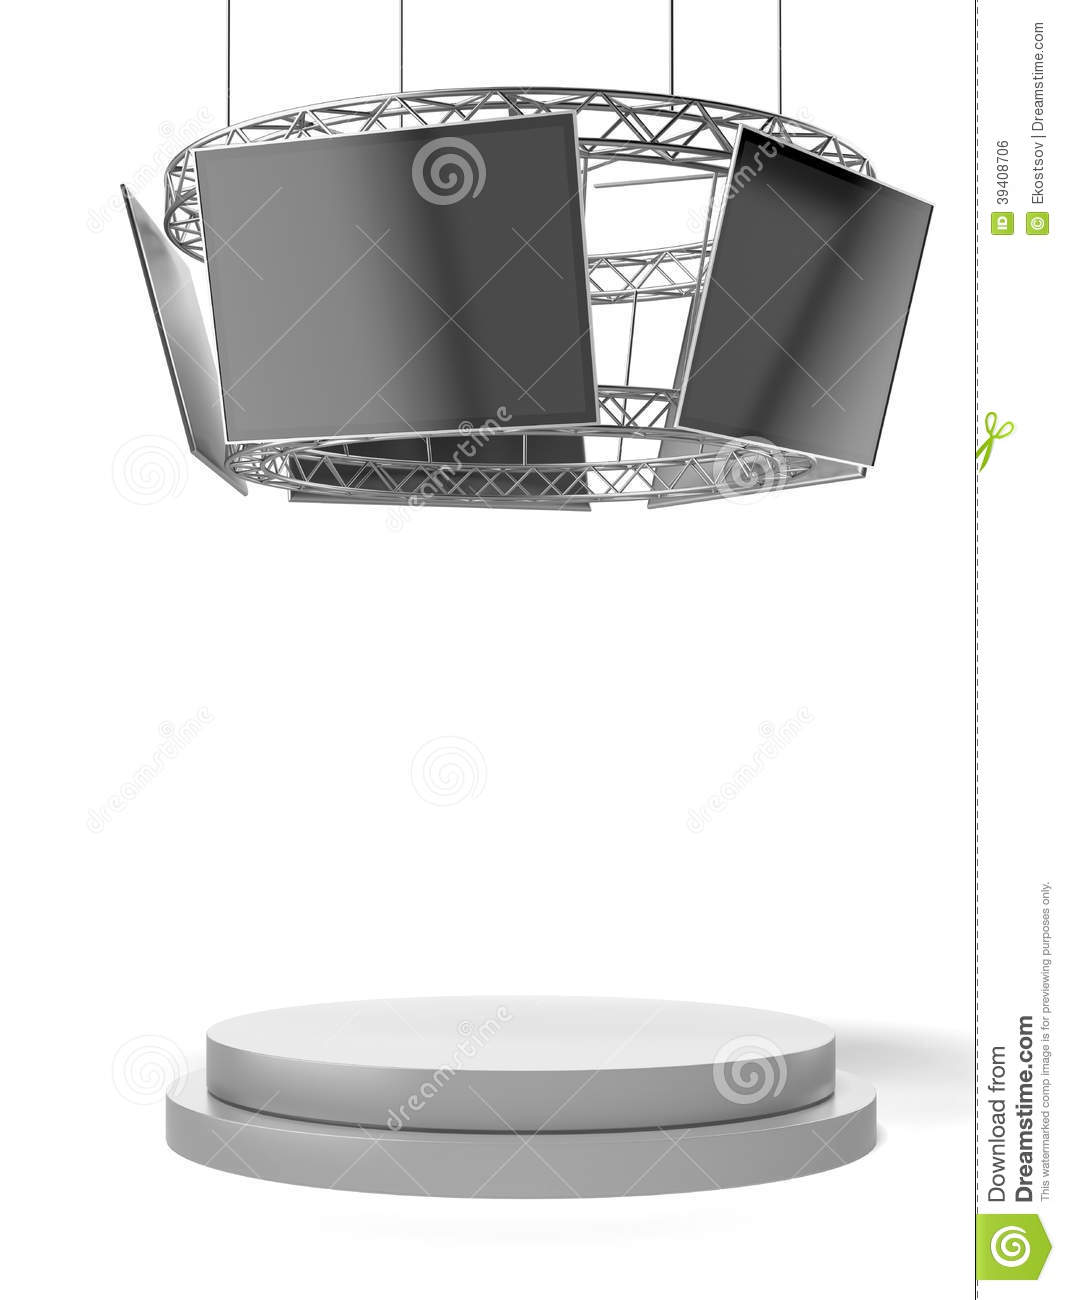 Exhibition Stand Circle : Circle exhibition stand with tv and pedestal stock photo